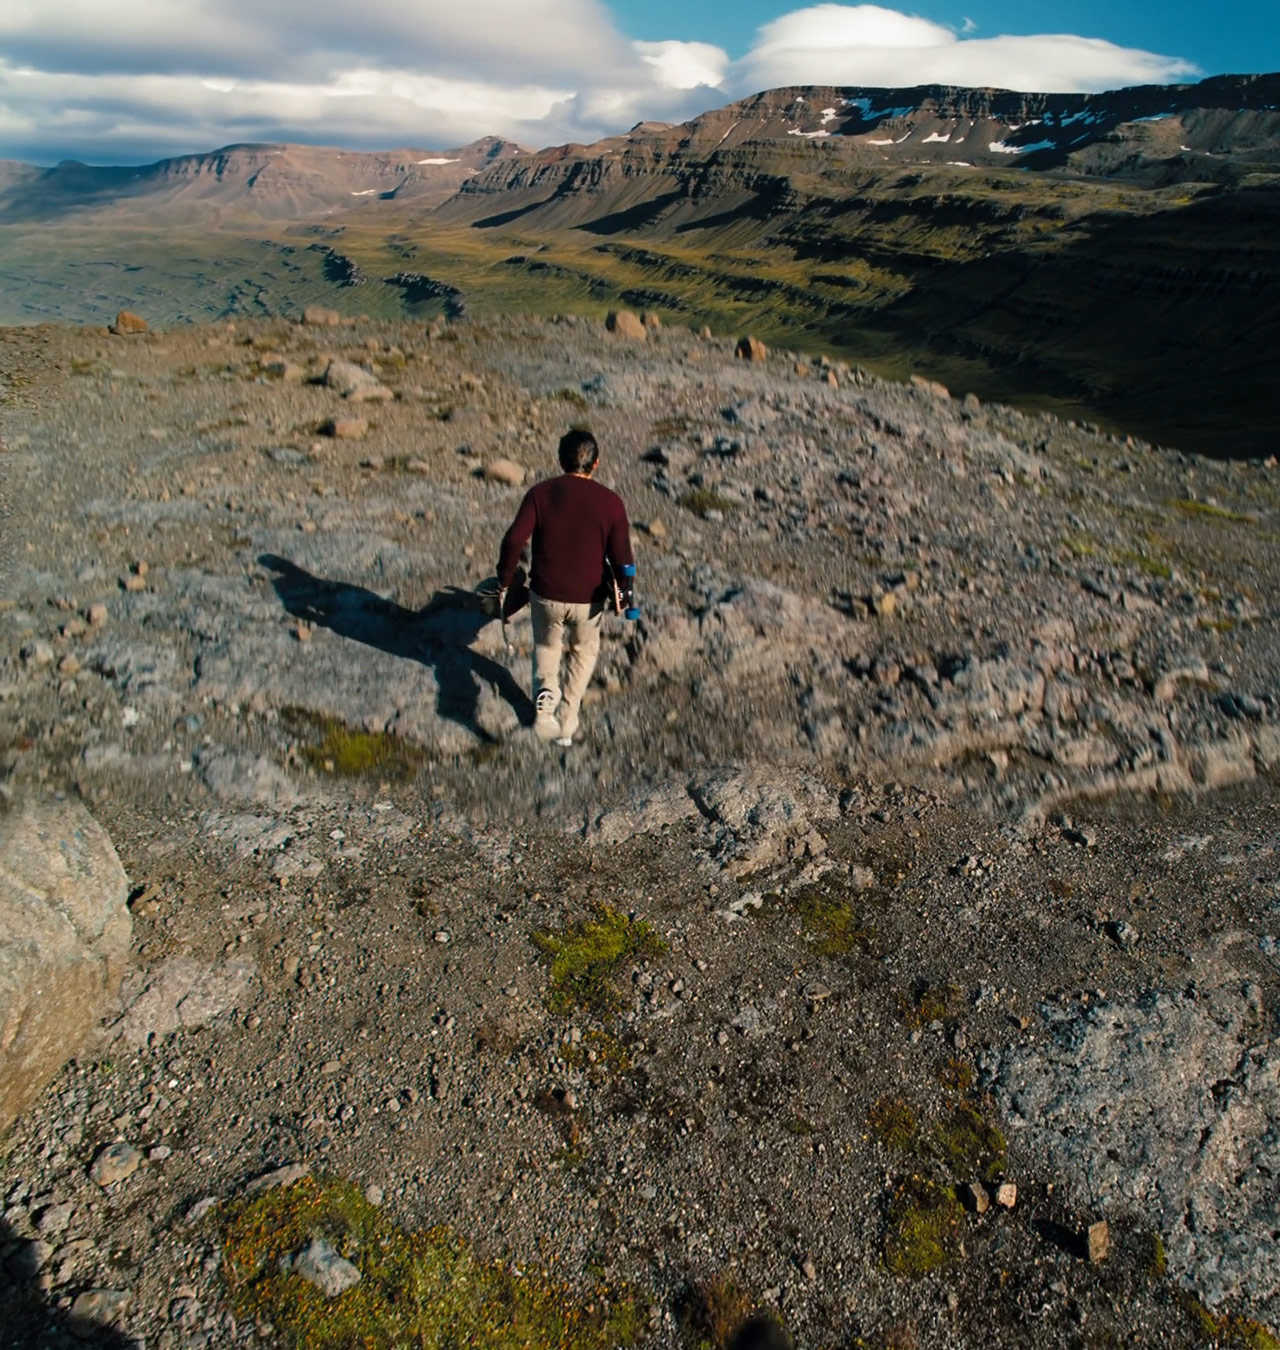 the-secret-life-of-walter-mitty_ben-stiller_overlook_film-panoramas